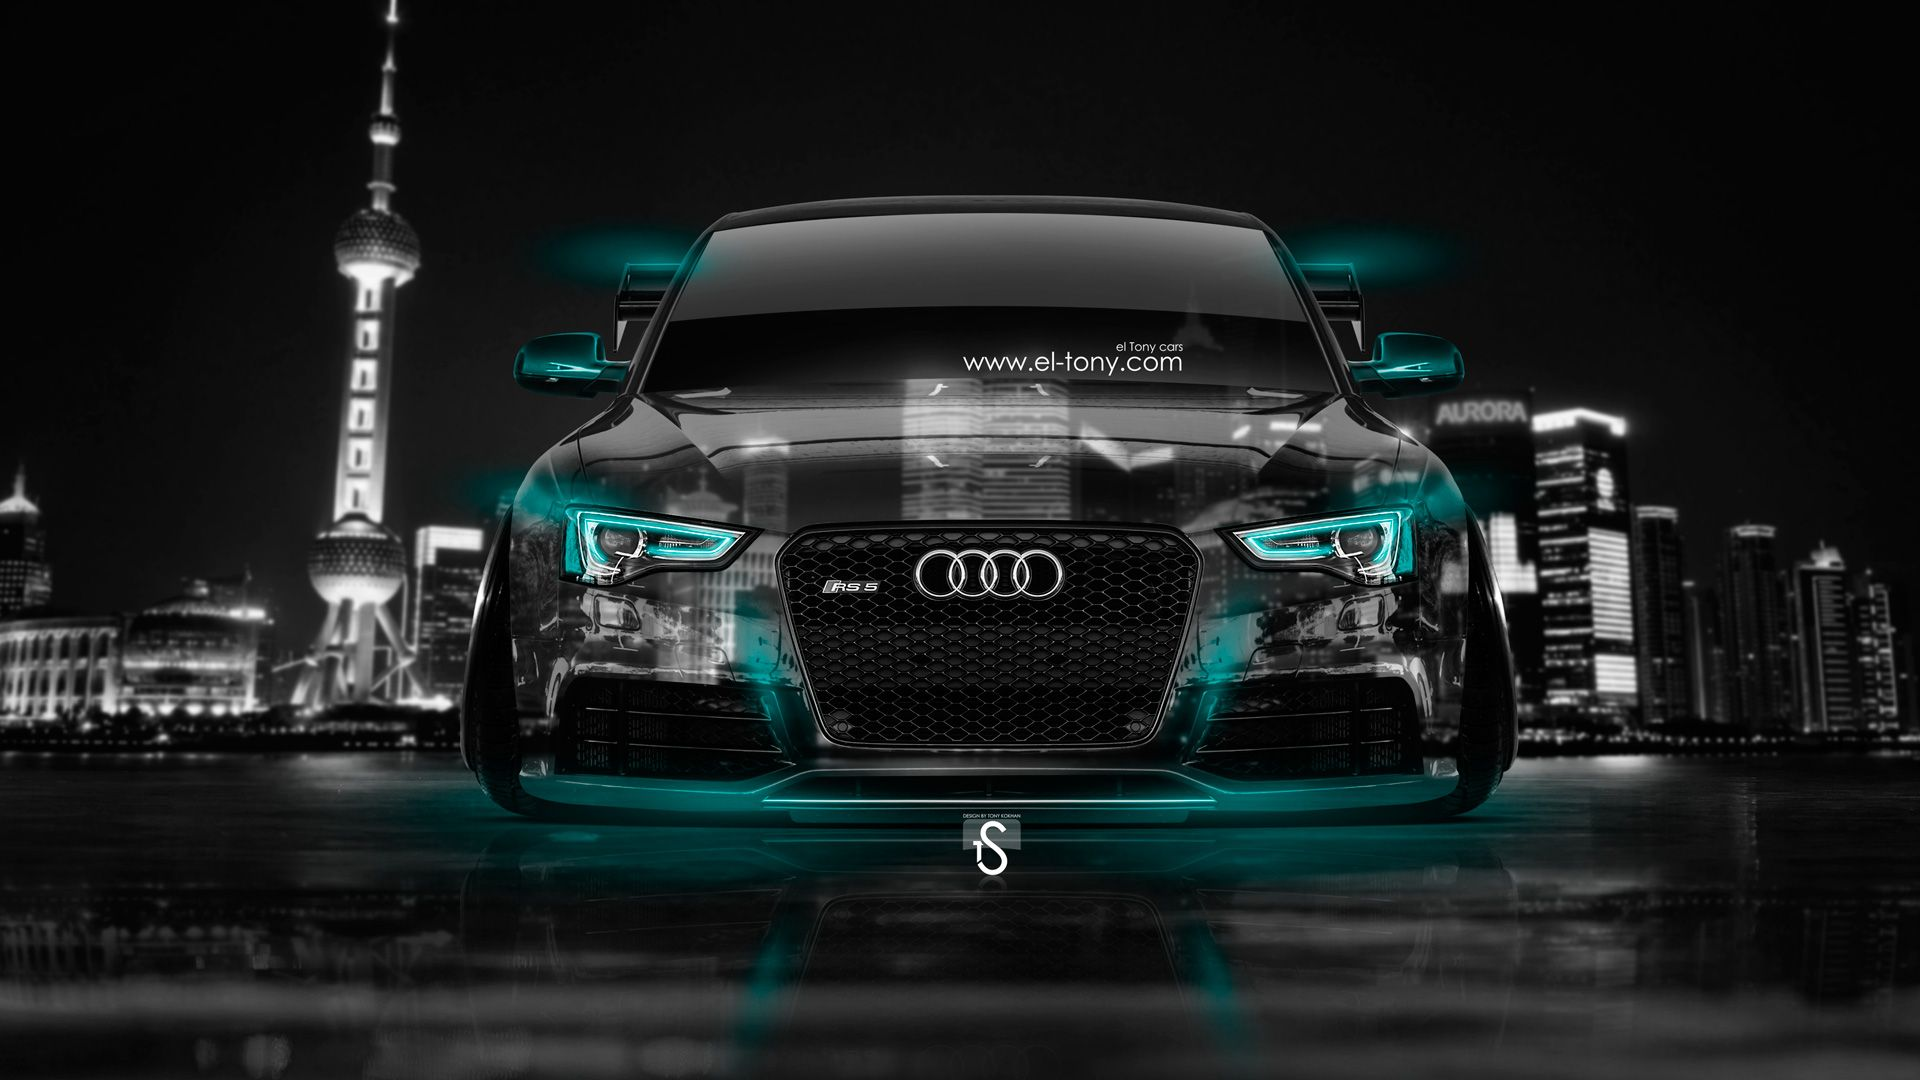 Exceptionnel Audi Tuning Front Crystal City Car 2014   Audi Tuning Crystal City Car  Altezza JDM Front Crystal City Car Lancer Evolution X Tuning Front Crystal  City Car